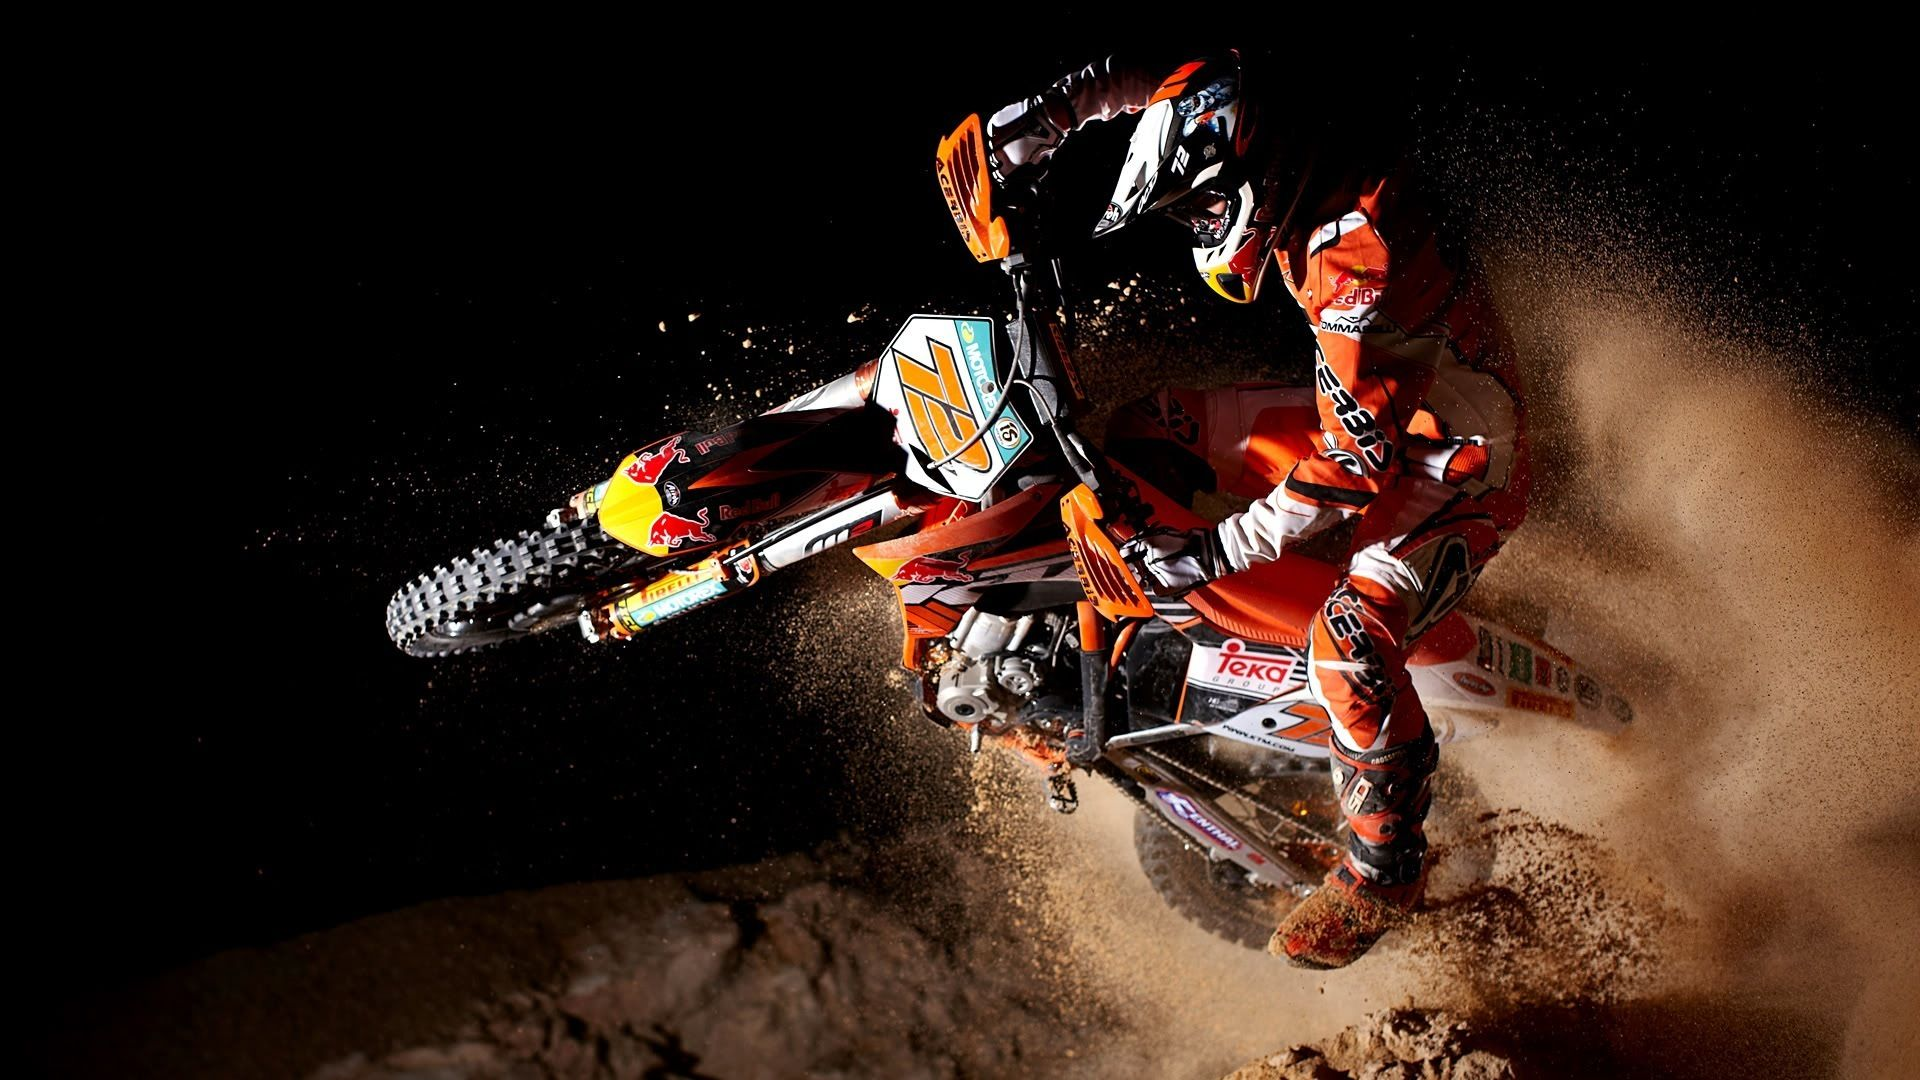 104 Motocross Hd Wallpapers Backgrounds Wallpaper Abyss